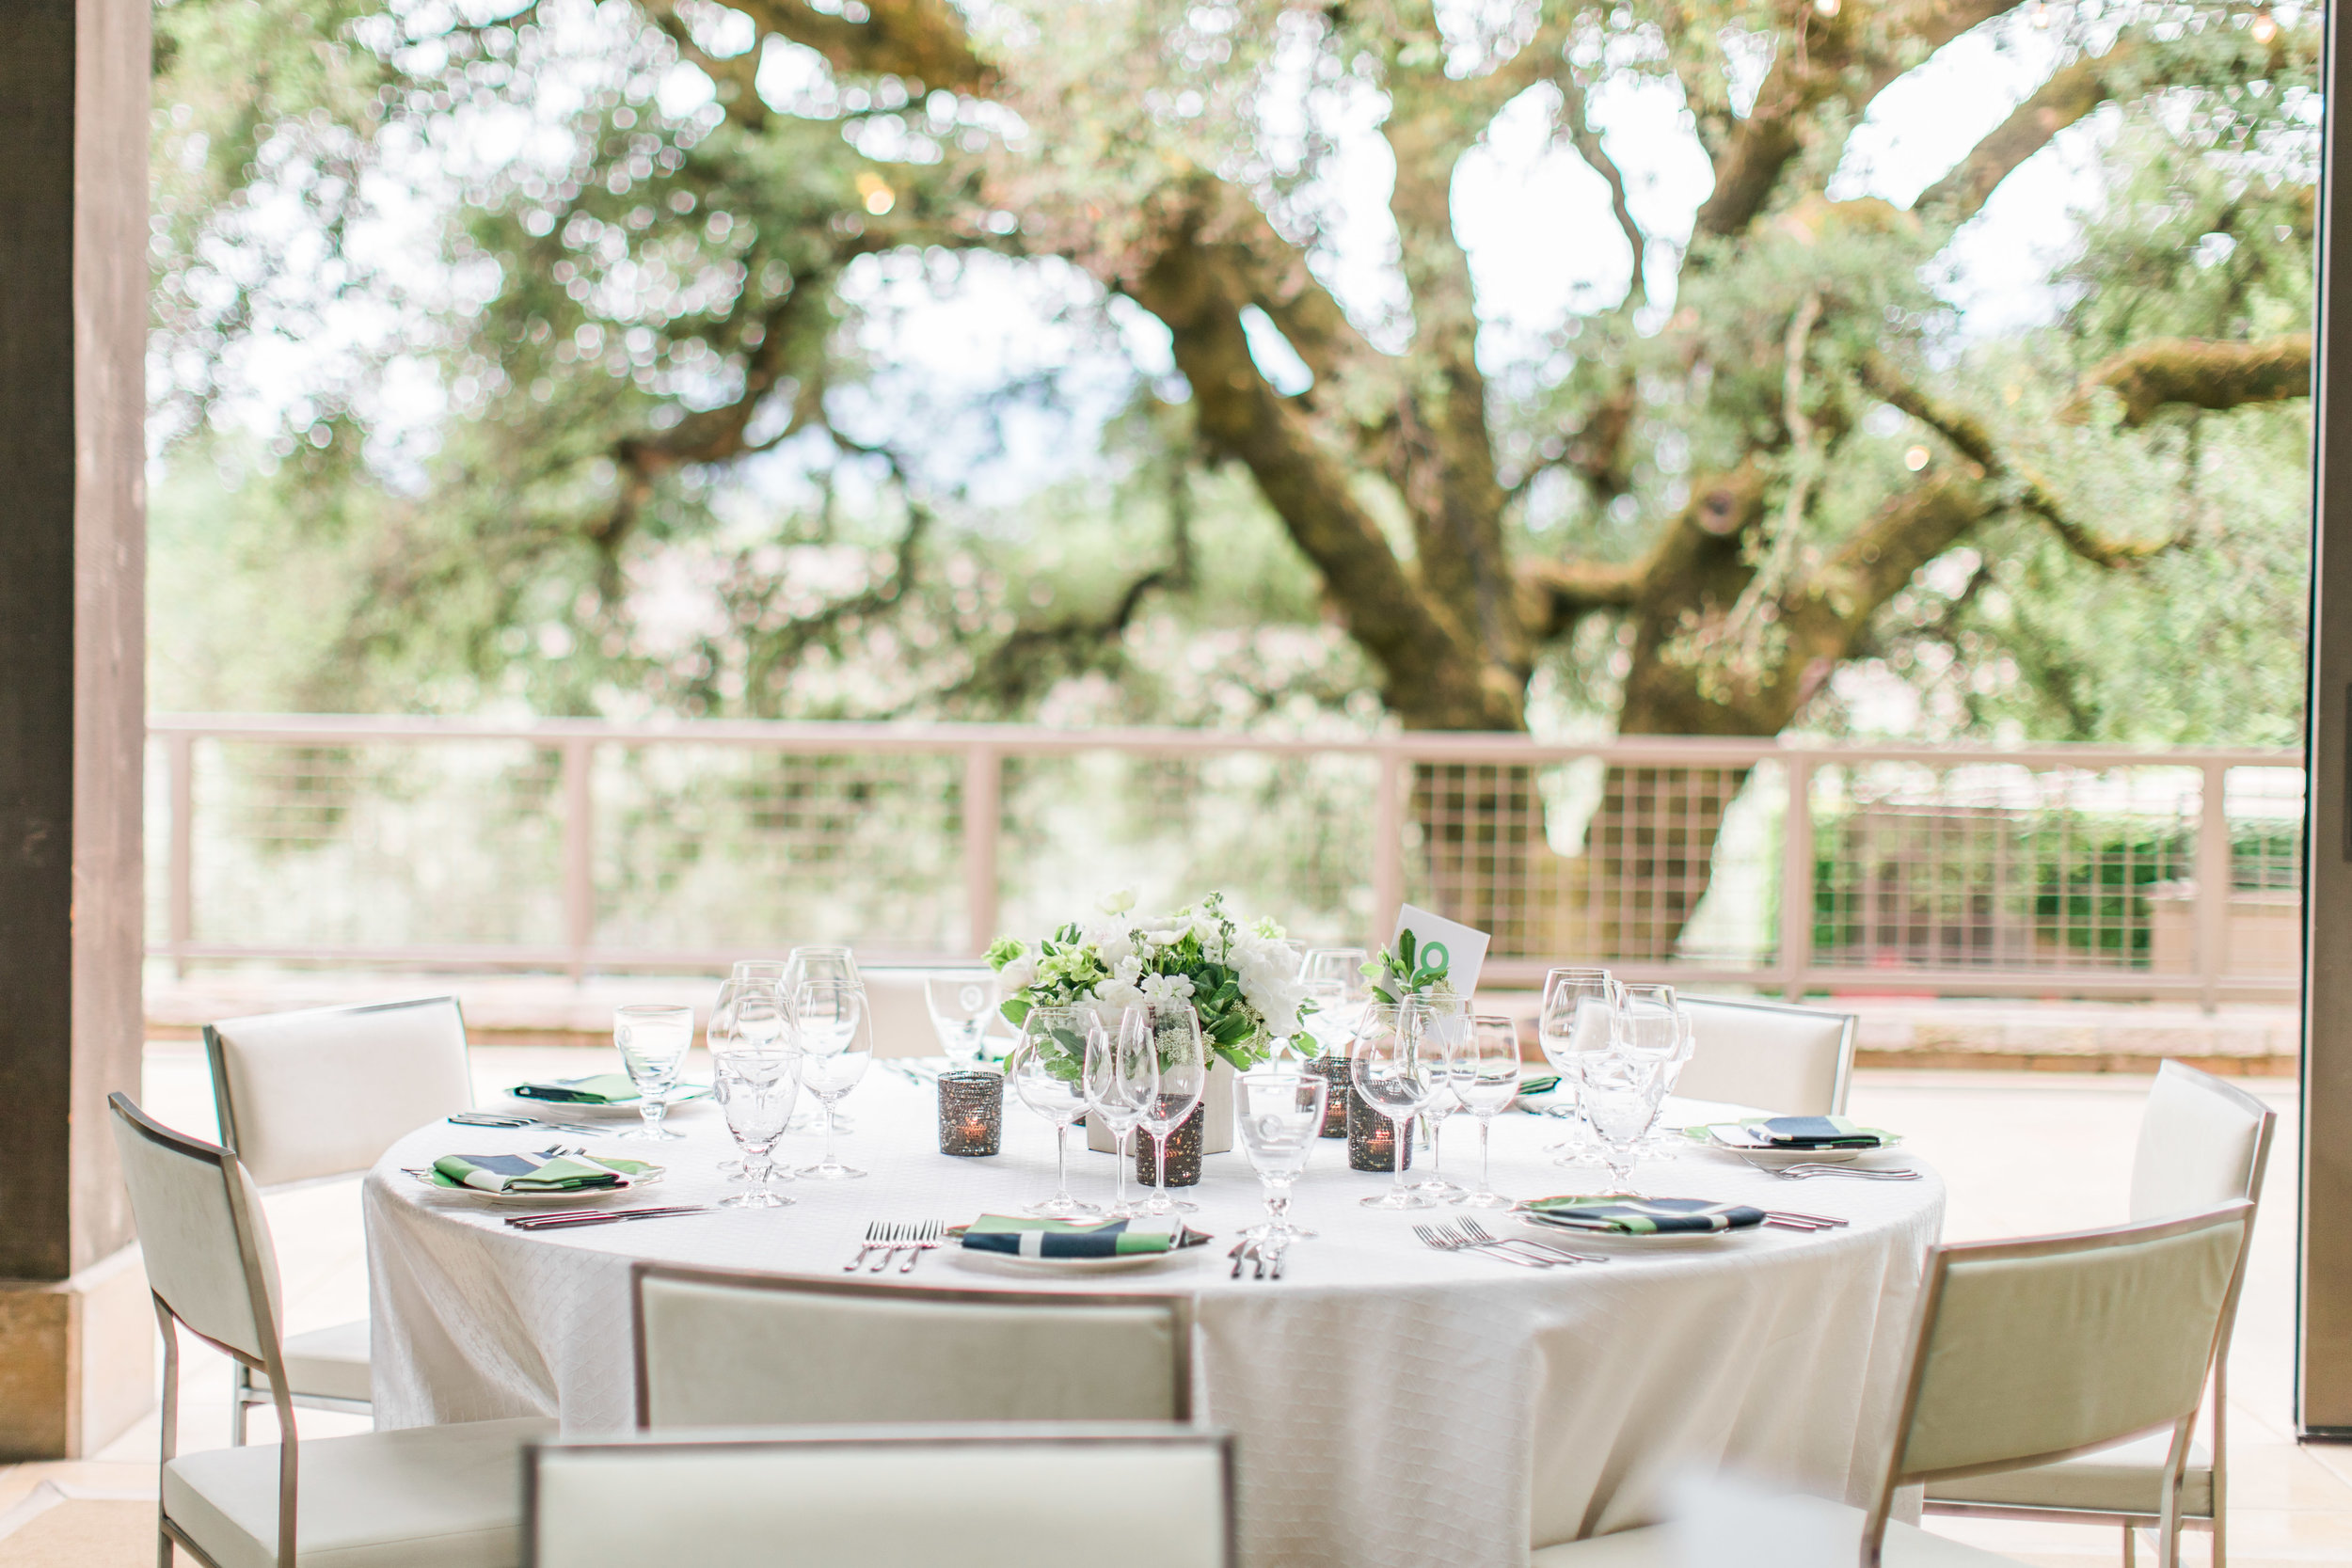 Meadowood-Event-Photos-by-JBJ-Pictures-12.jpg